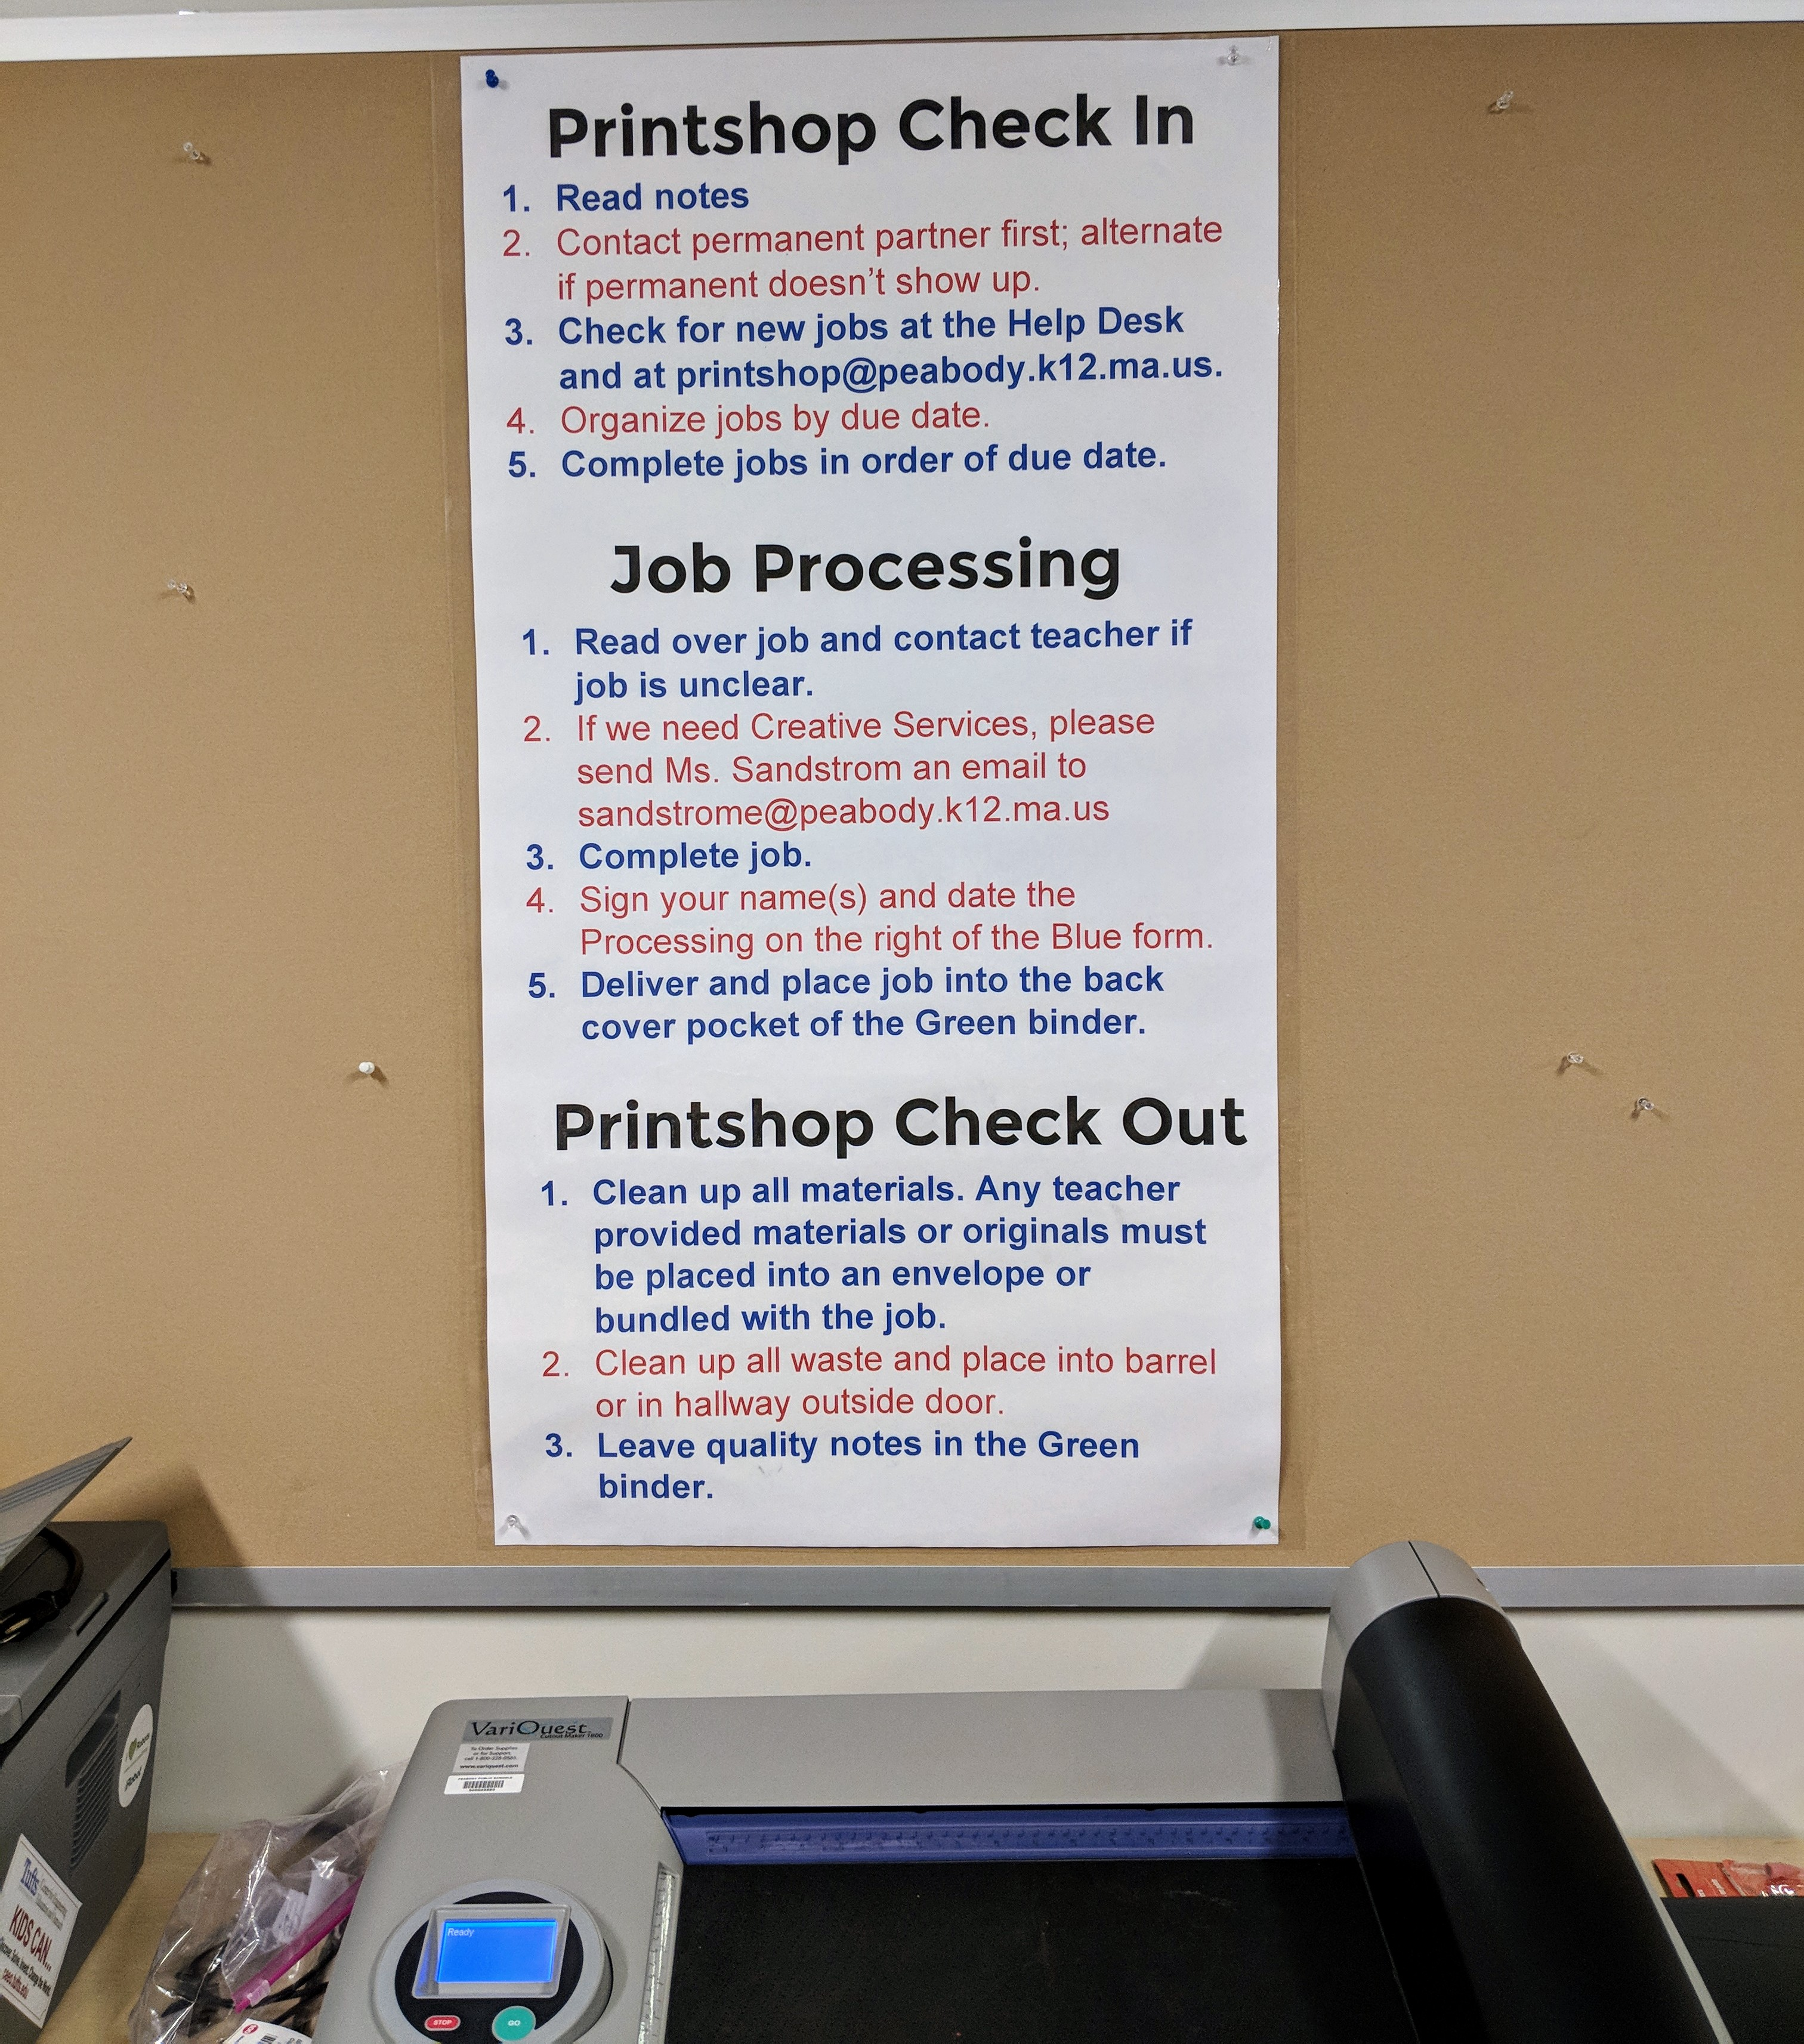 higgins middle school printshop poster Counts VariQuest tools